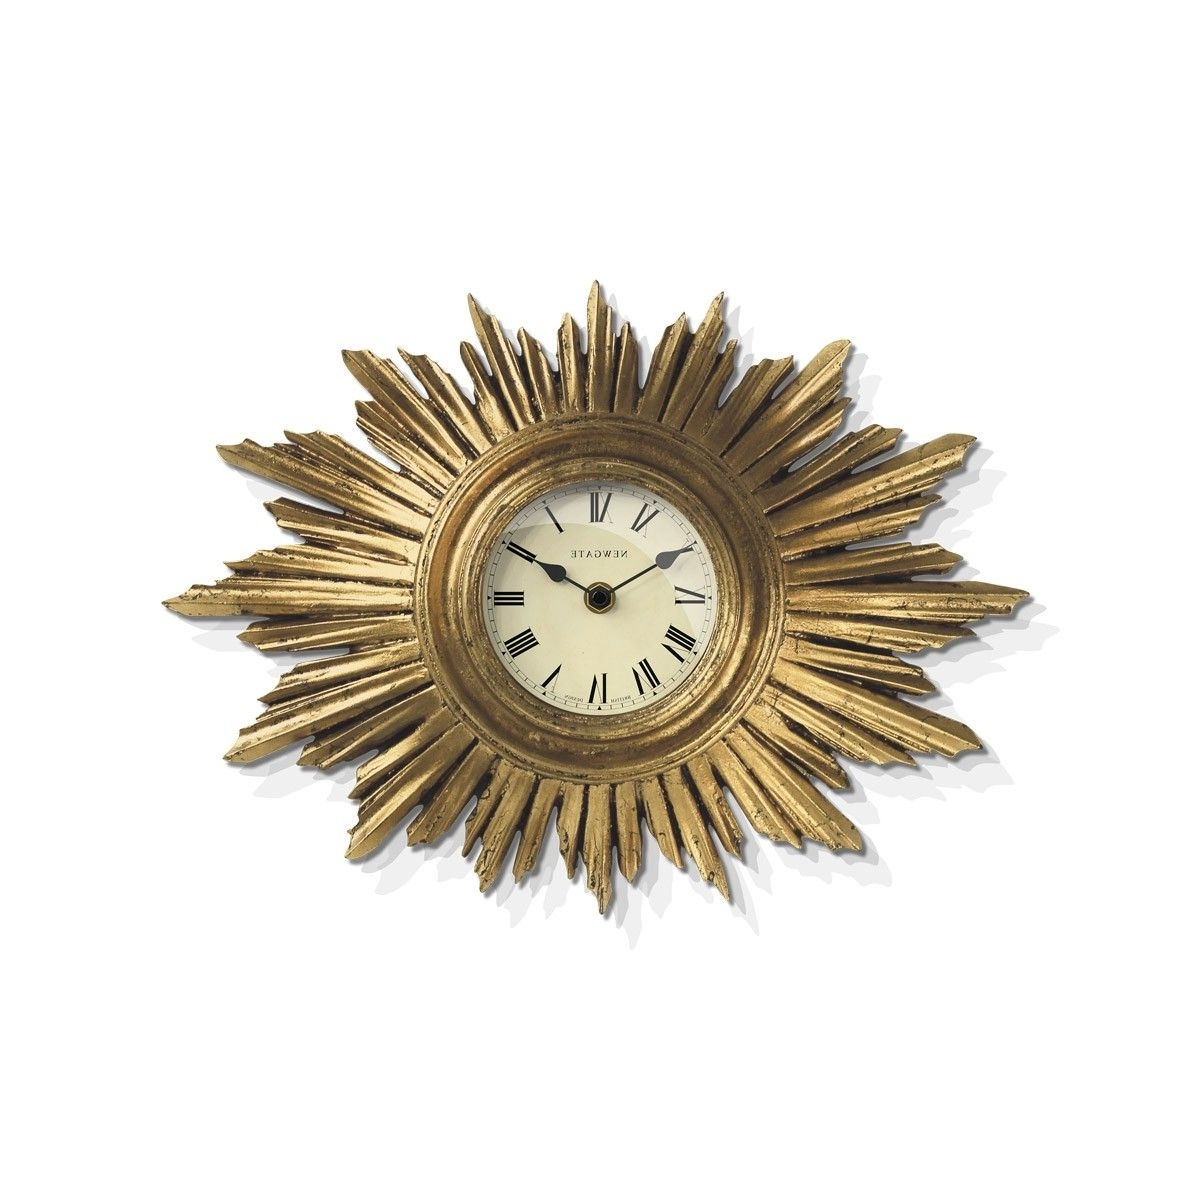 The Sunburst Wall Clock In Vintage Goldnewgate Clocks An Art Inside Best And Newest Art Deco Wall Clock (View 14 of 15)